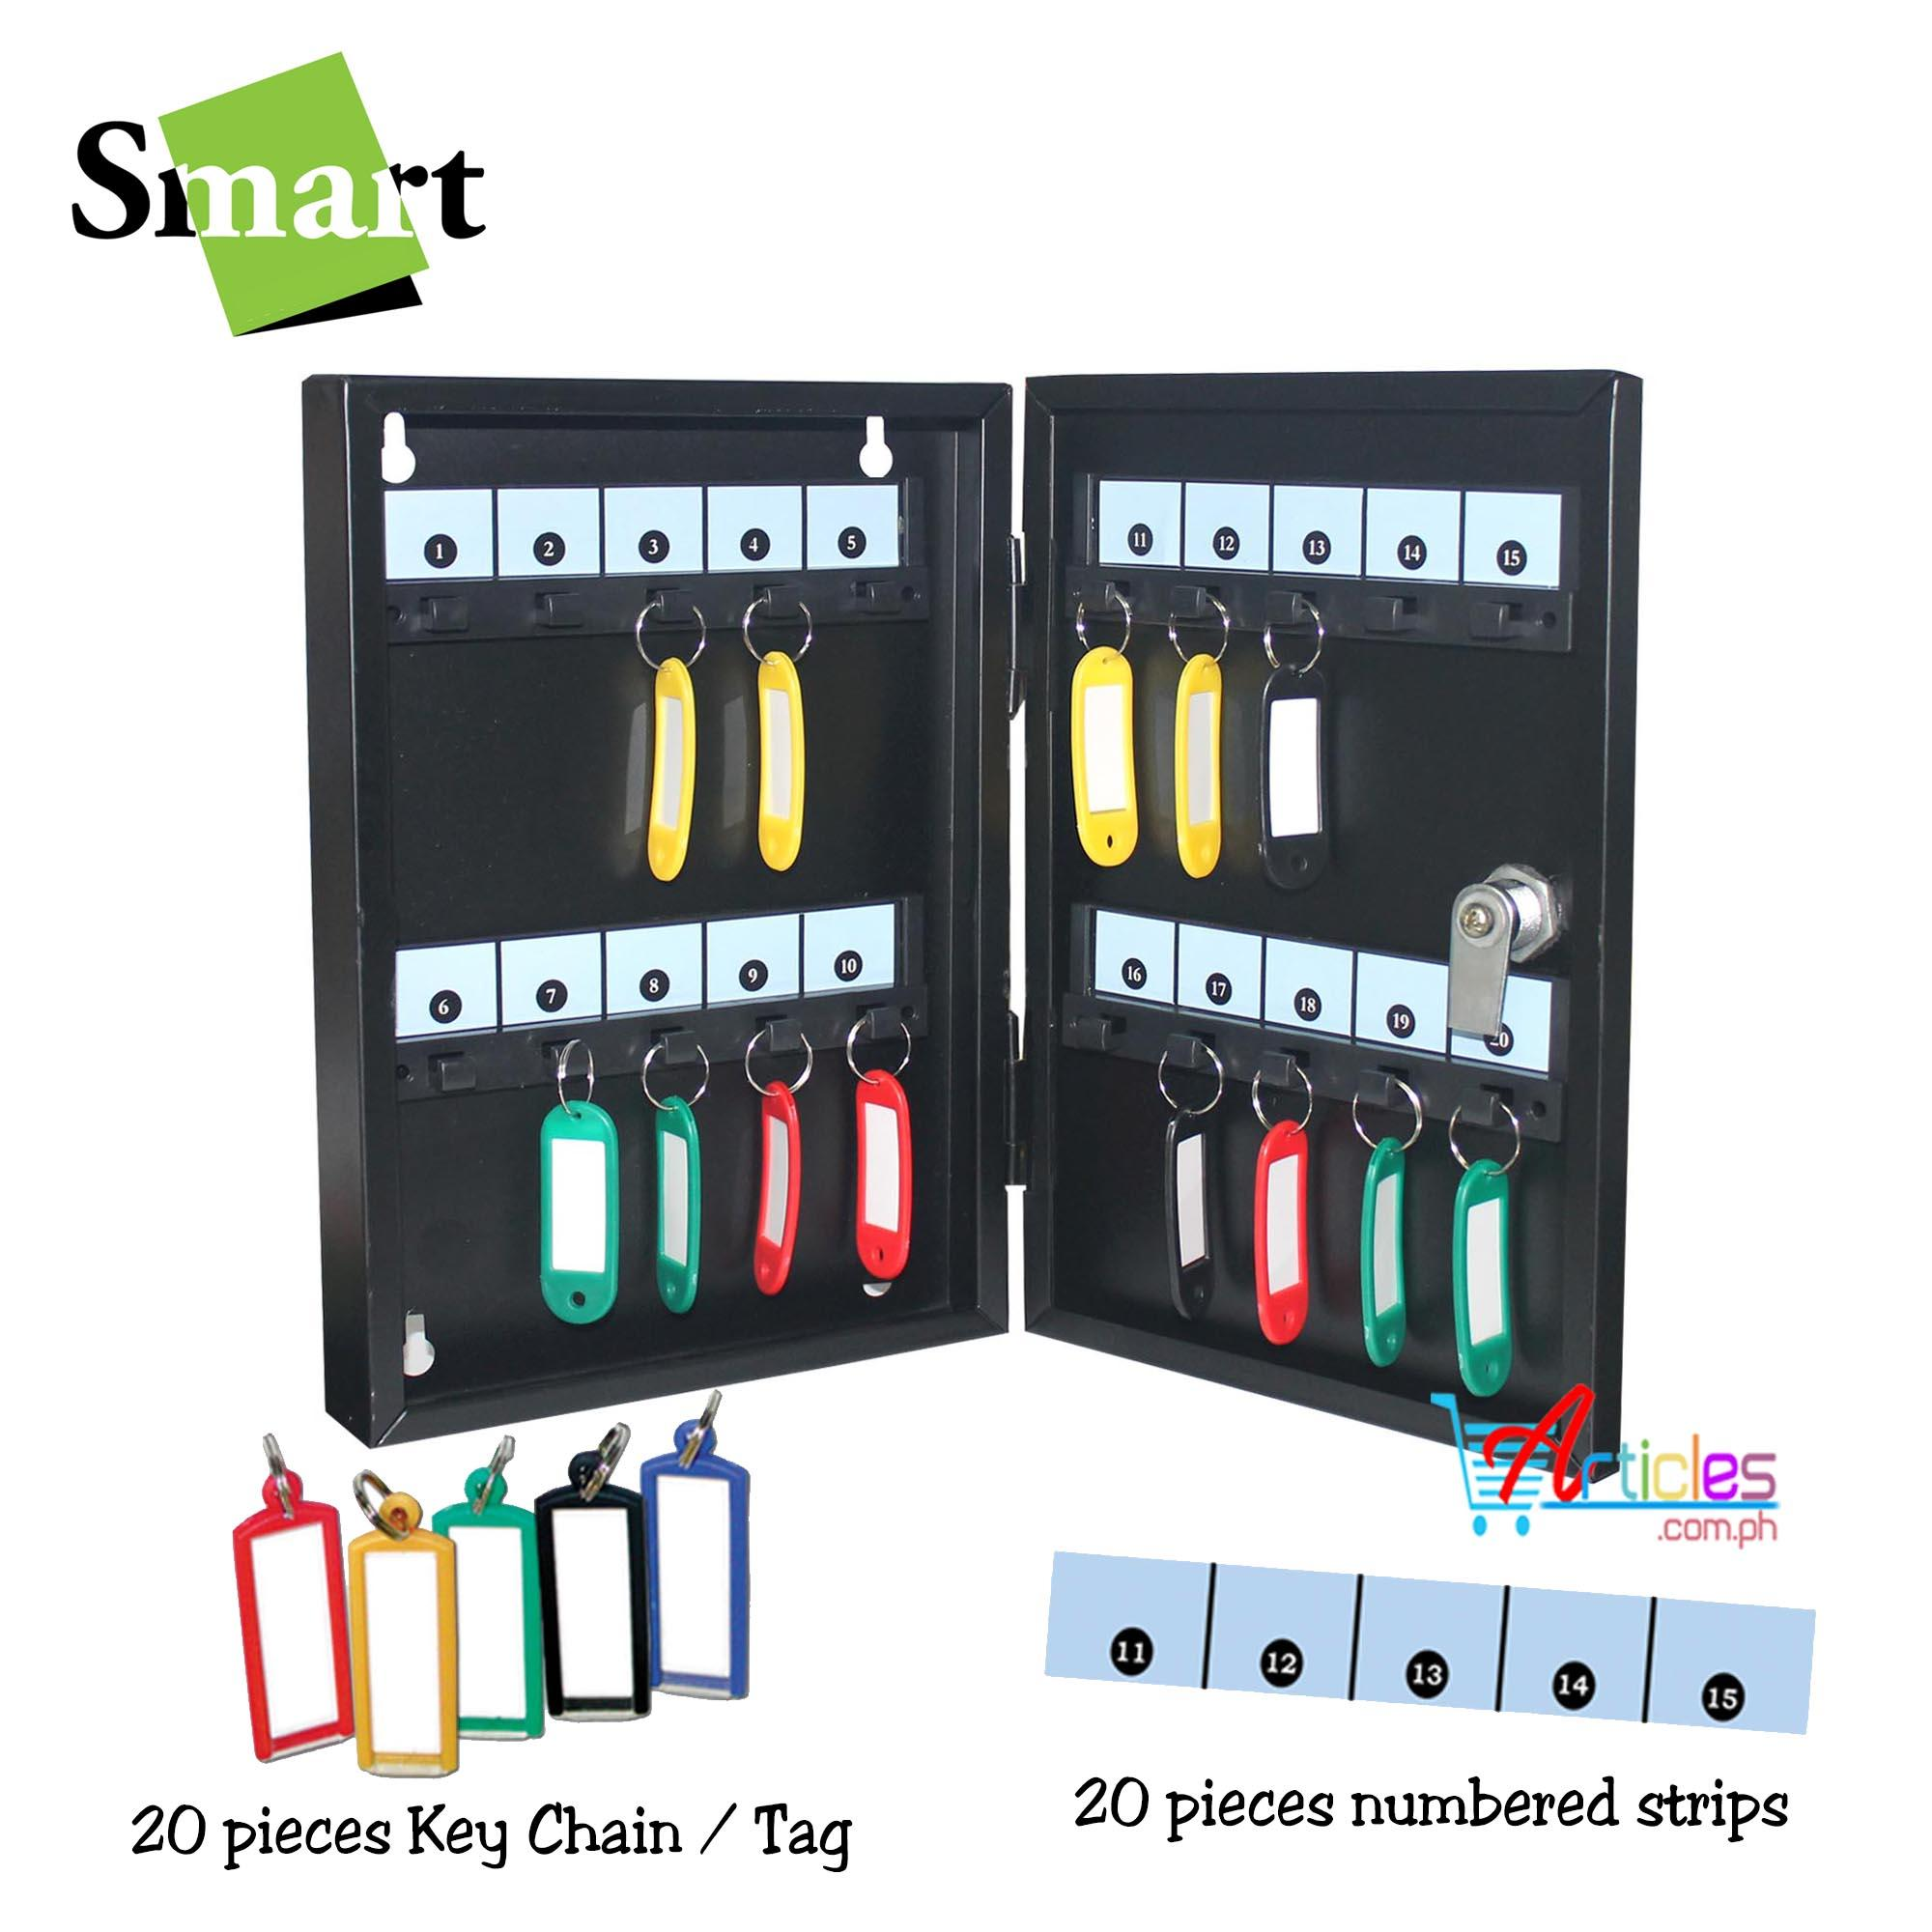 Smart Sk-20 Key Box 20 Keys Capacity With Key Chain And Numbers Strip Included By Trinity Marketing - Home.